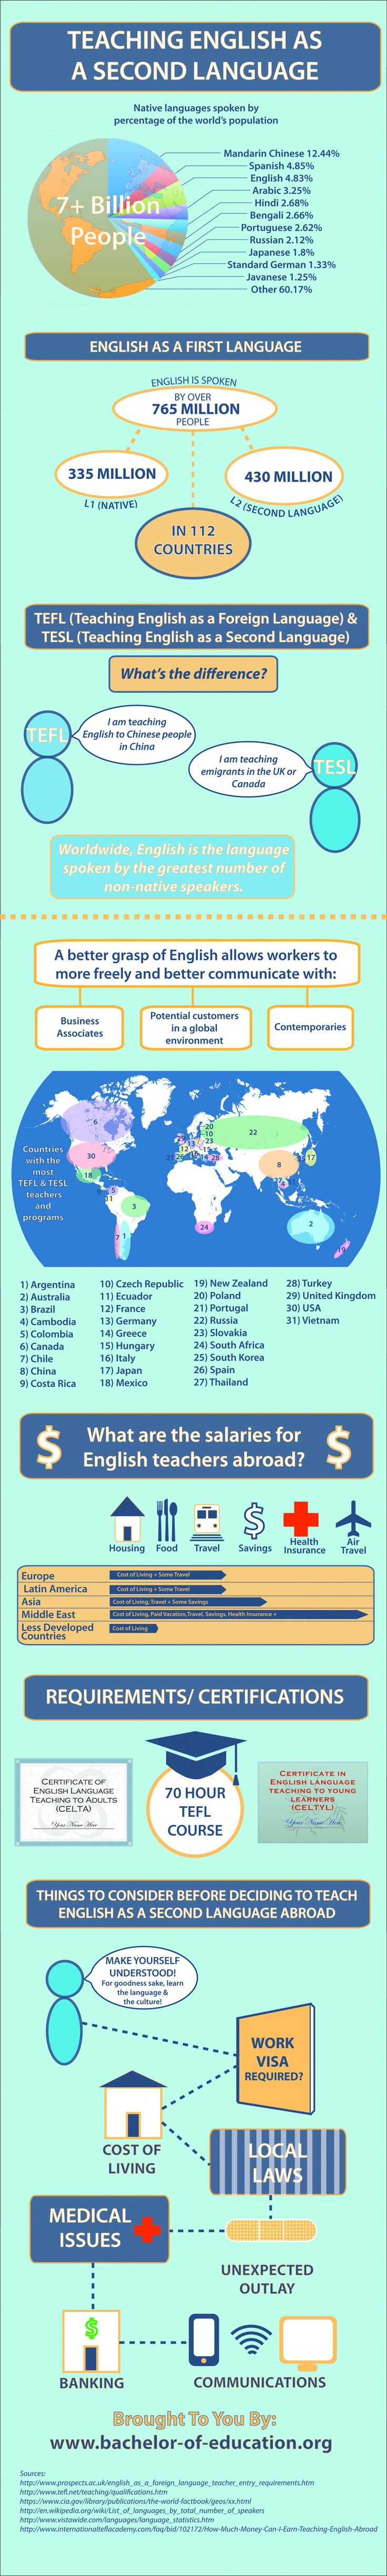 Teaching English as a second language- stats about teaching English in the world.